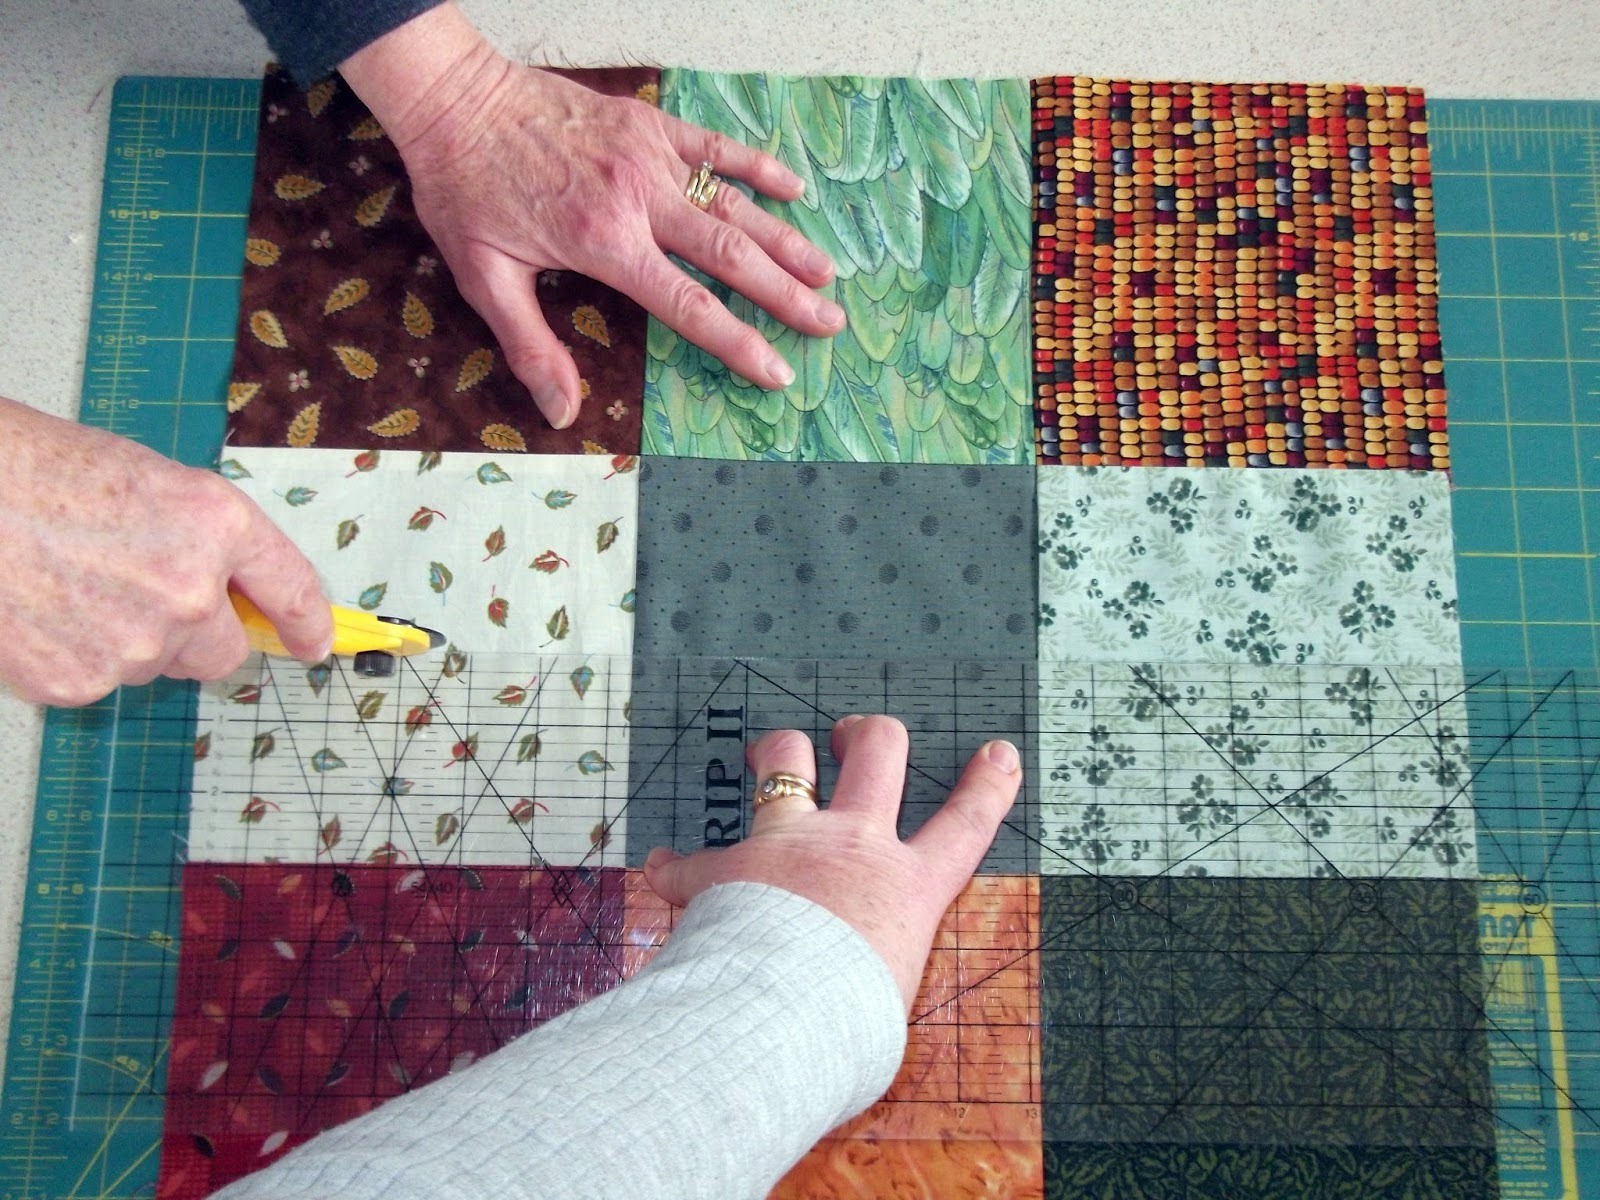 Made with my two hands: Make a patchwork quilt by just sewing ... : hand sew quilt - Adamdwight.com